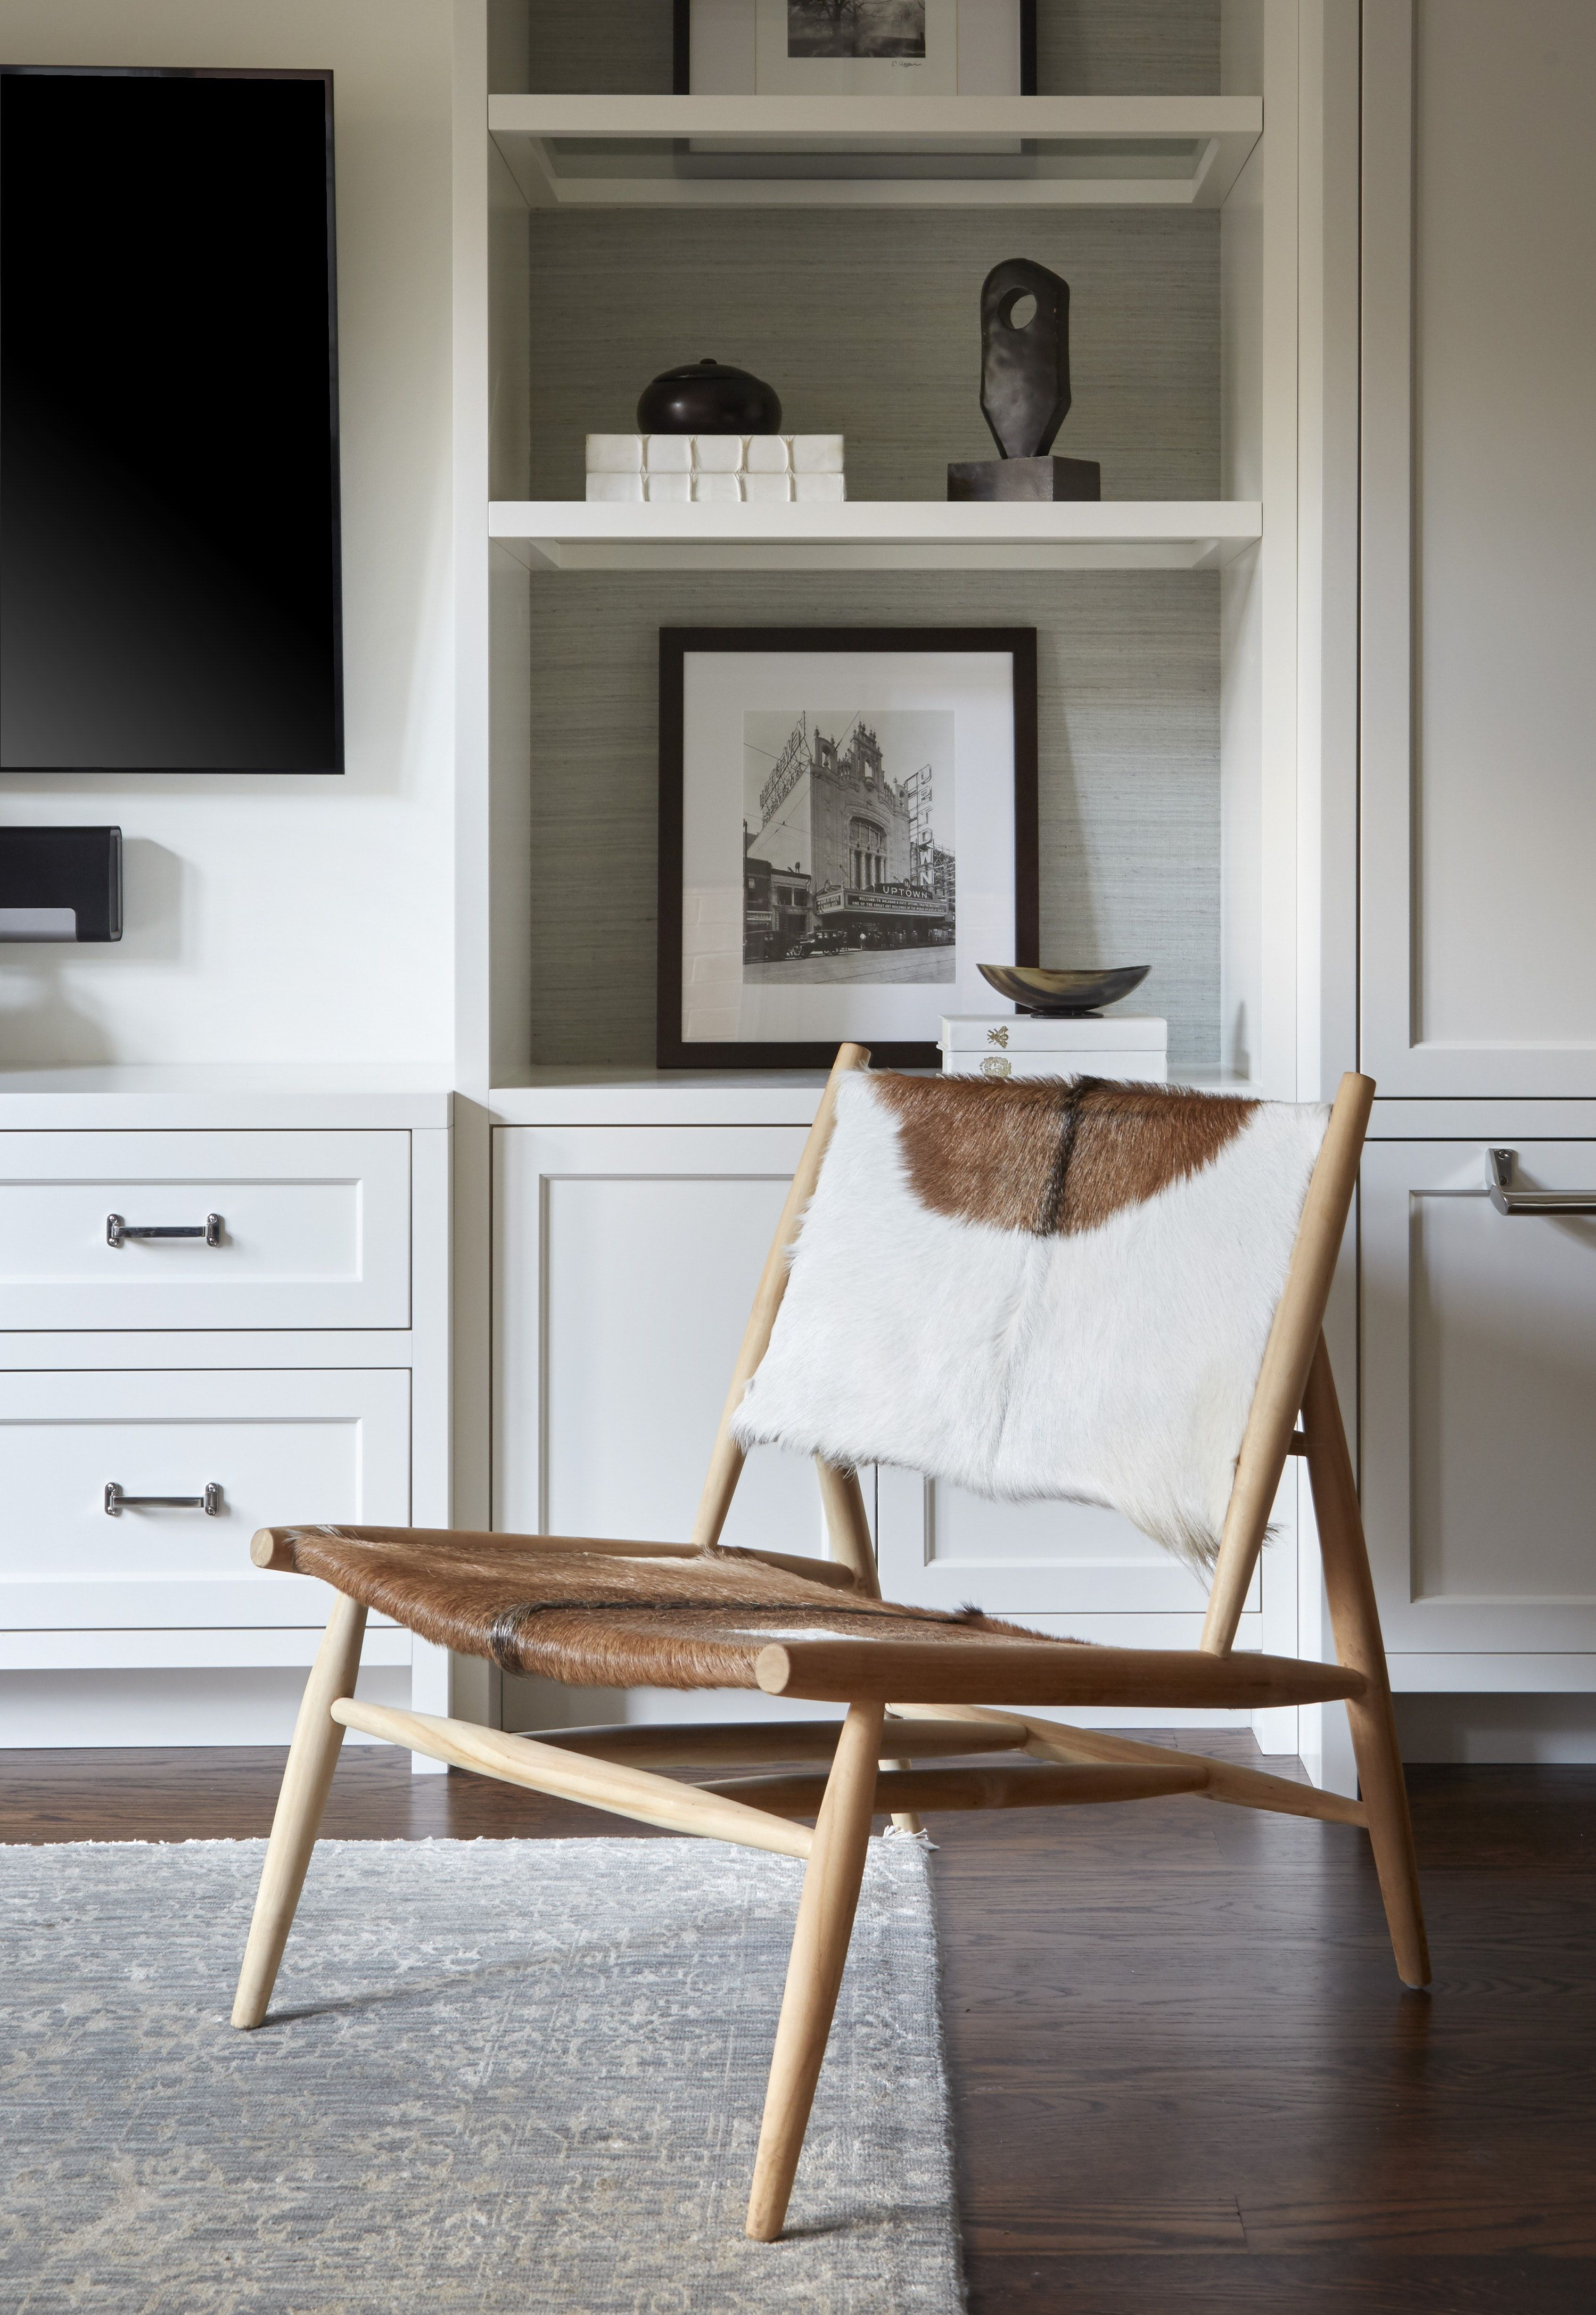 Powder Room By Amy Kartheiser Design: Vignette Of Cowhide And Teak Chair, Custom Built Ins With